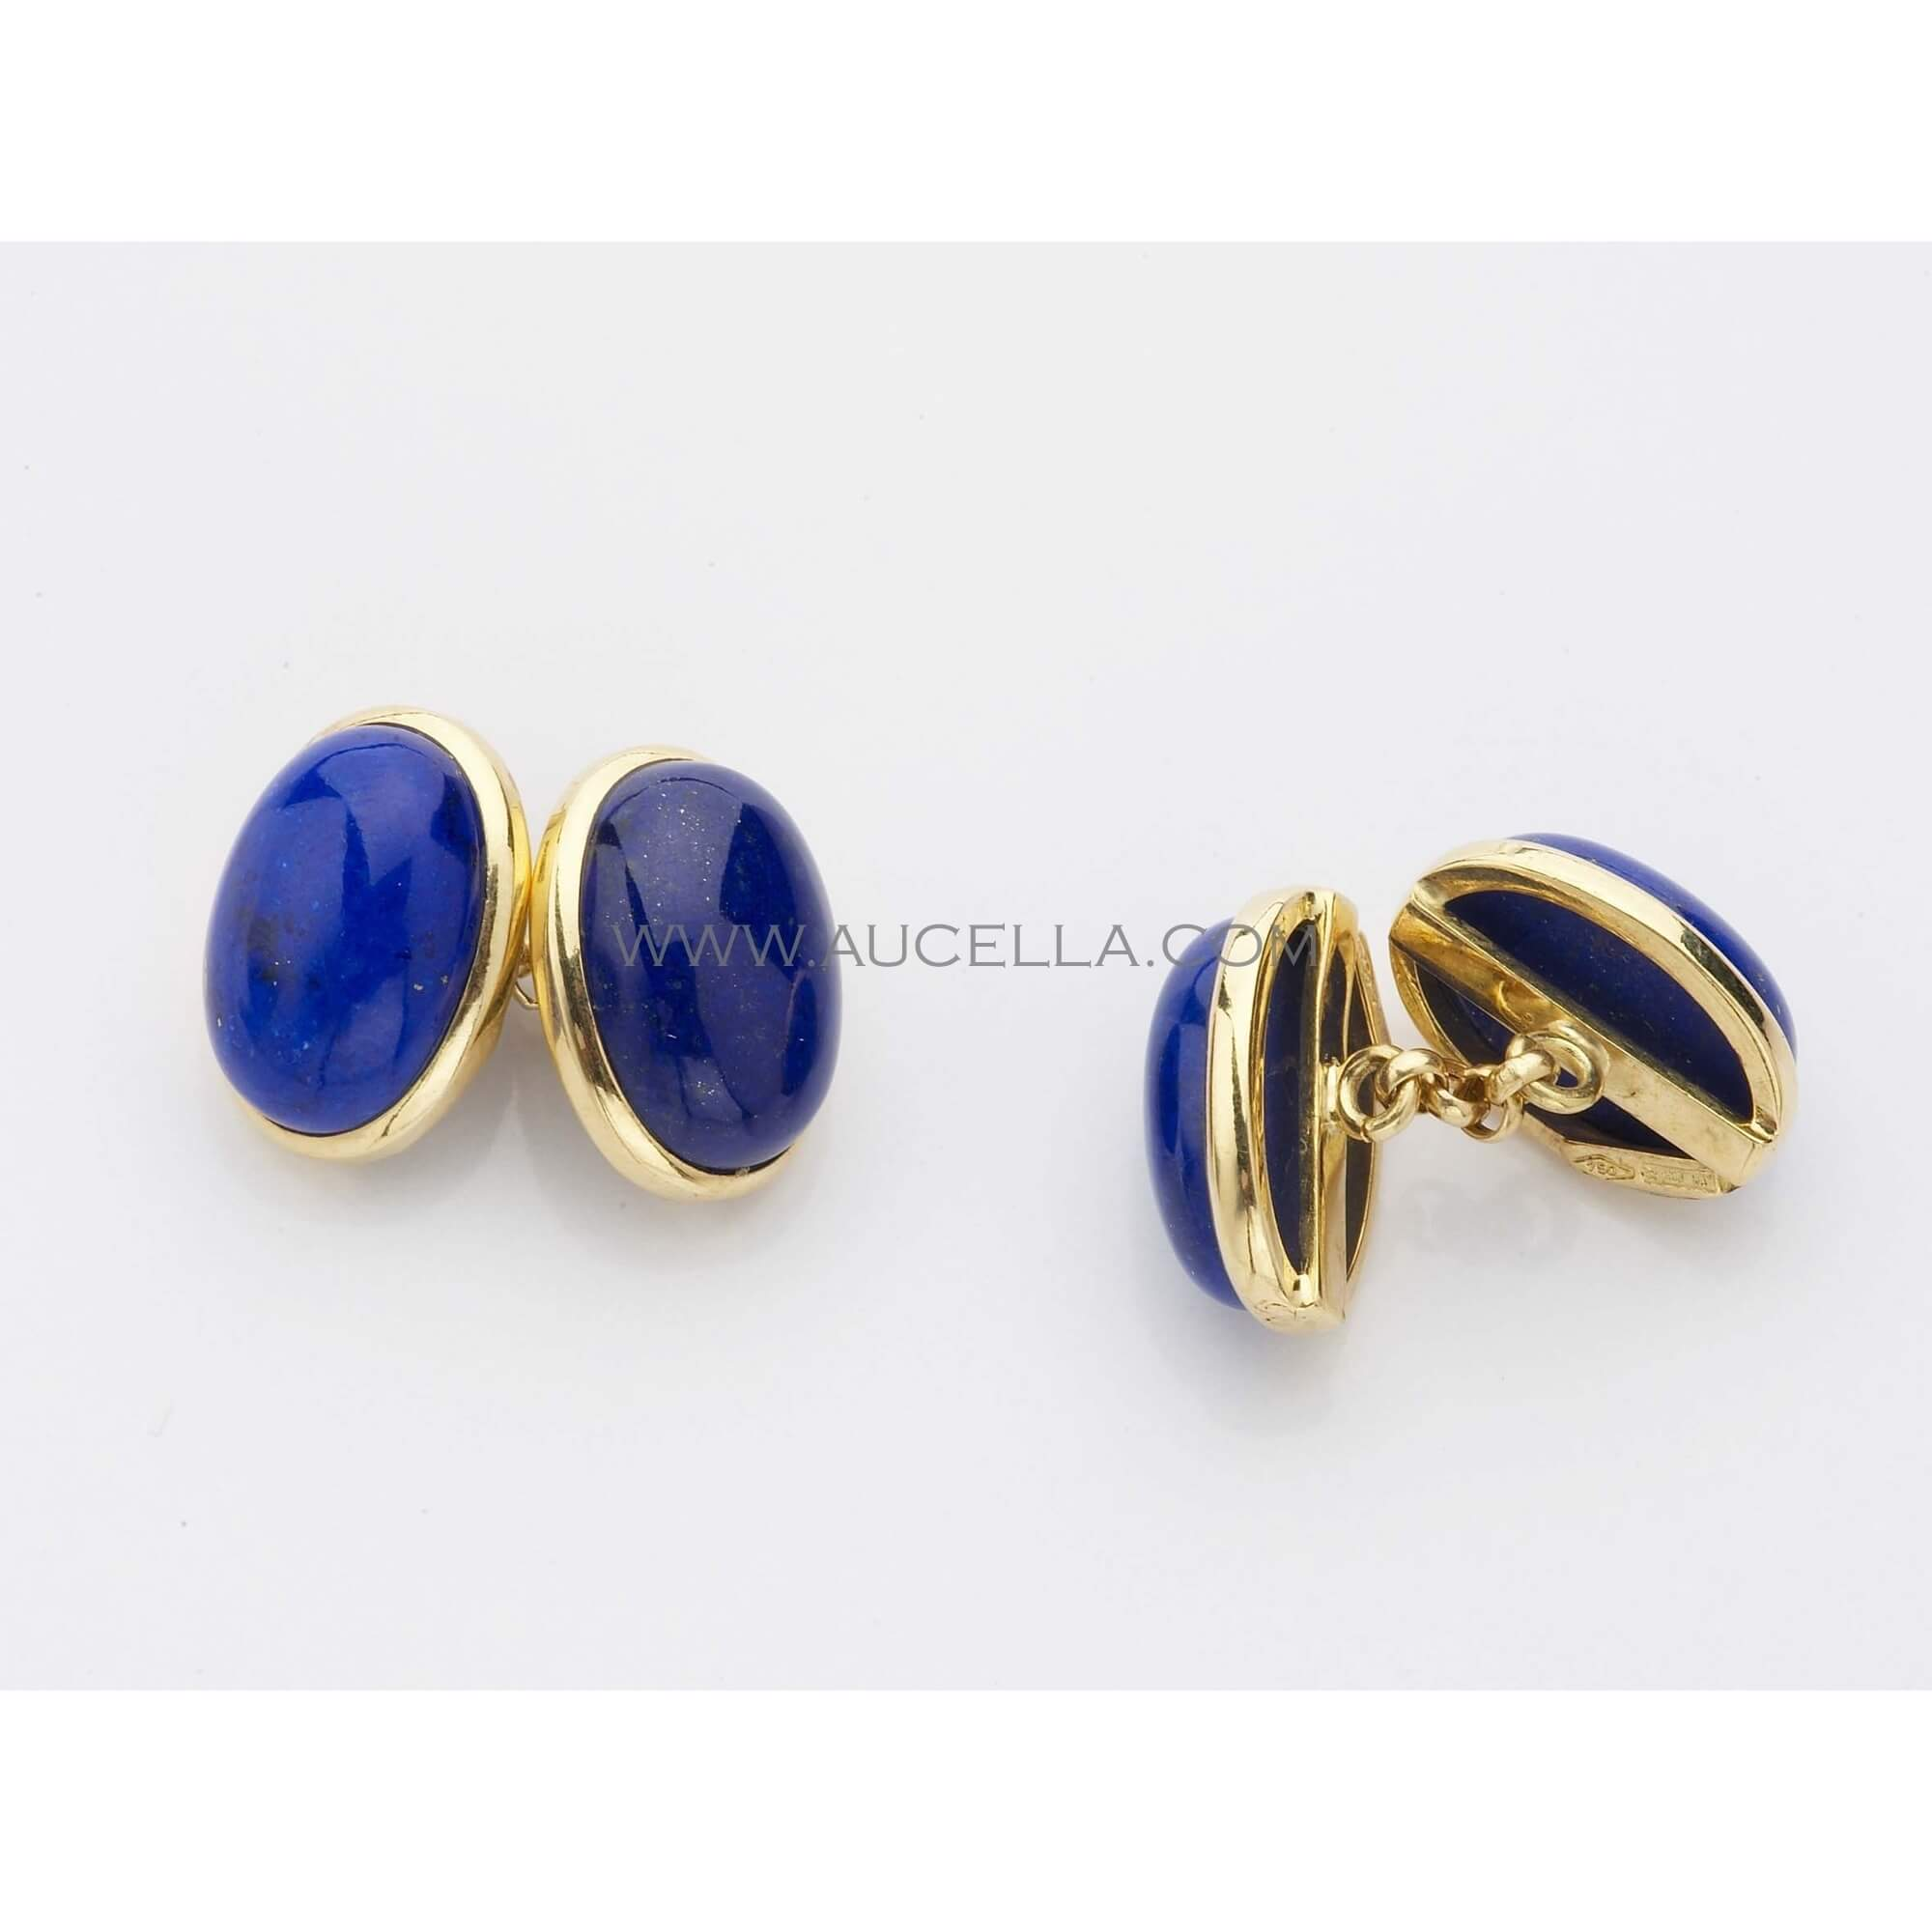 Cufflinks set in gold with natural lapis